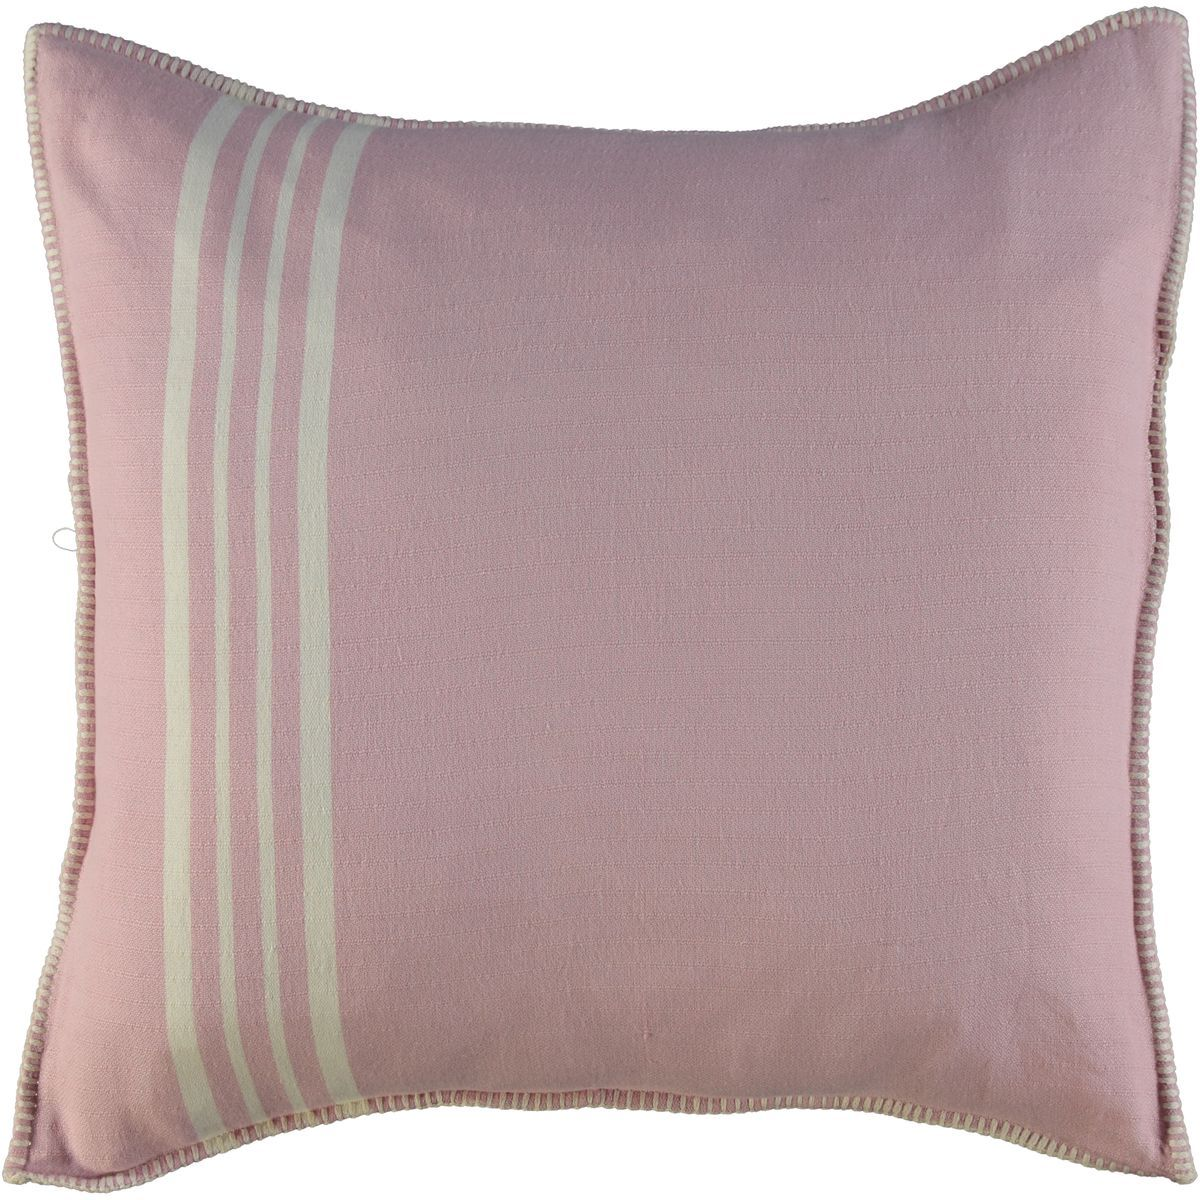 Cushion Cover Sultan - Rose Pink / 65x65